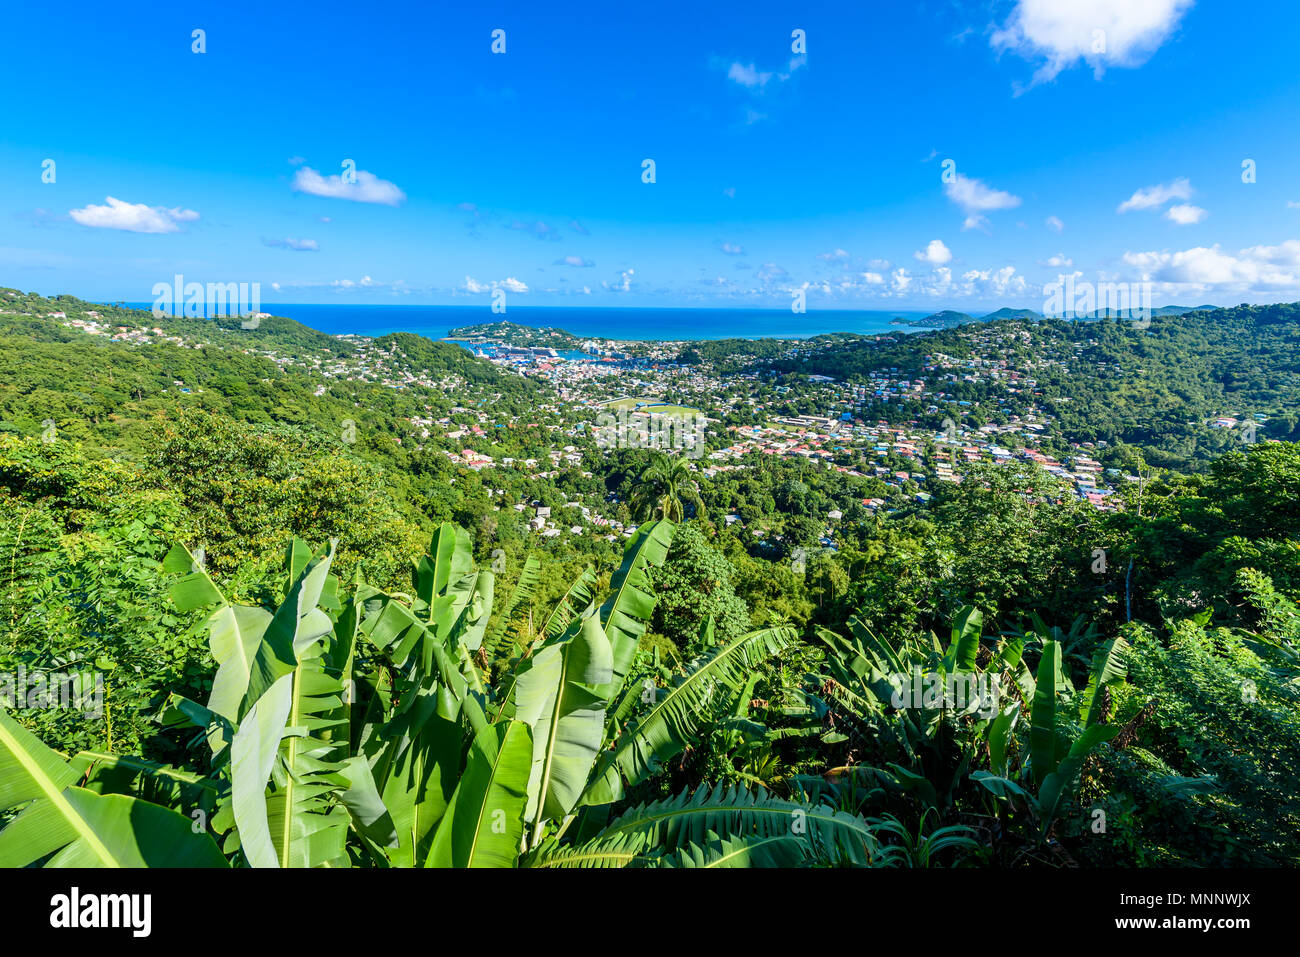 Castries, Saint Lucia - Tropical coast beach on the Caribbean island of St. Lucia. It is a paradise destination with a white sand beach and turquoiuse - Stock Image